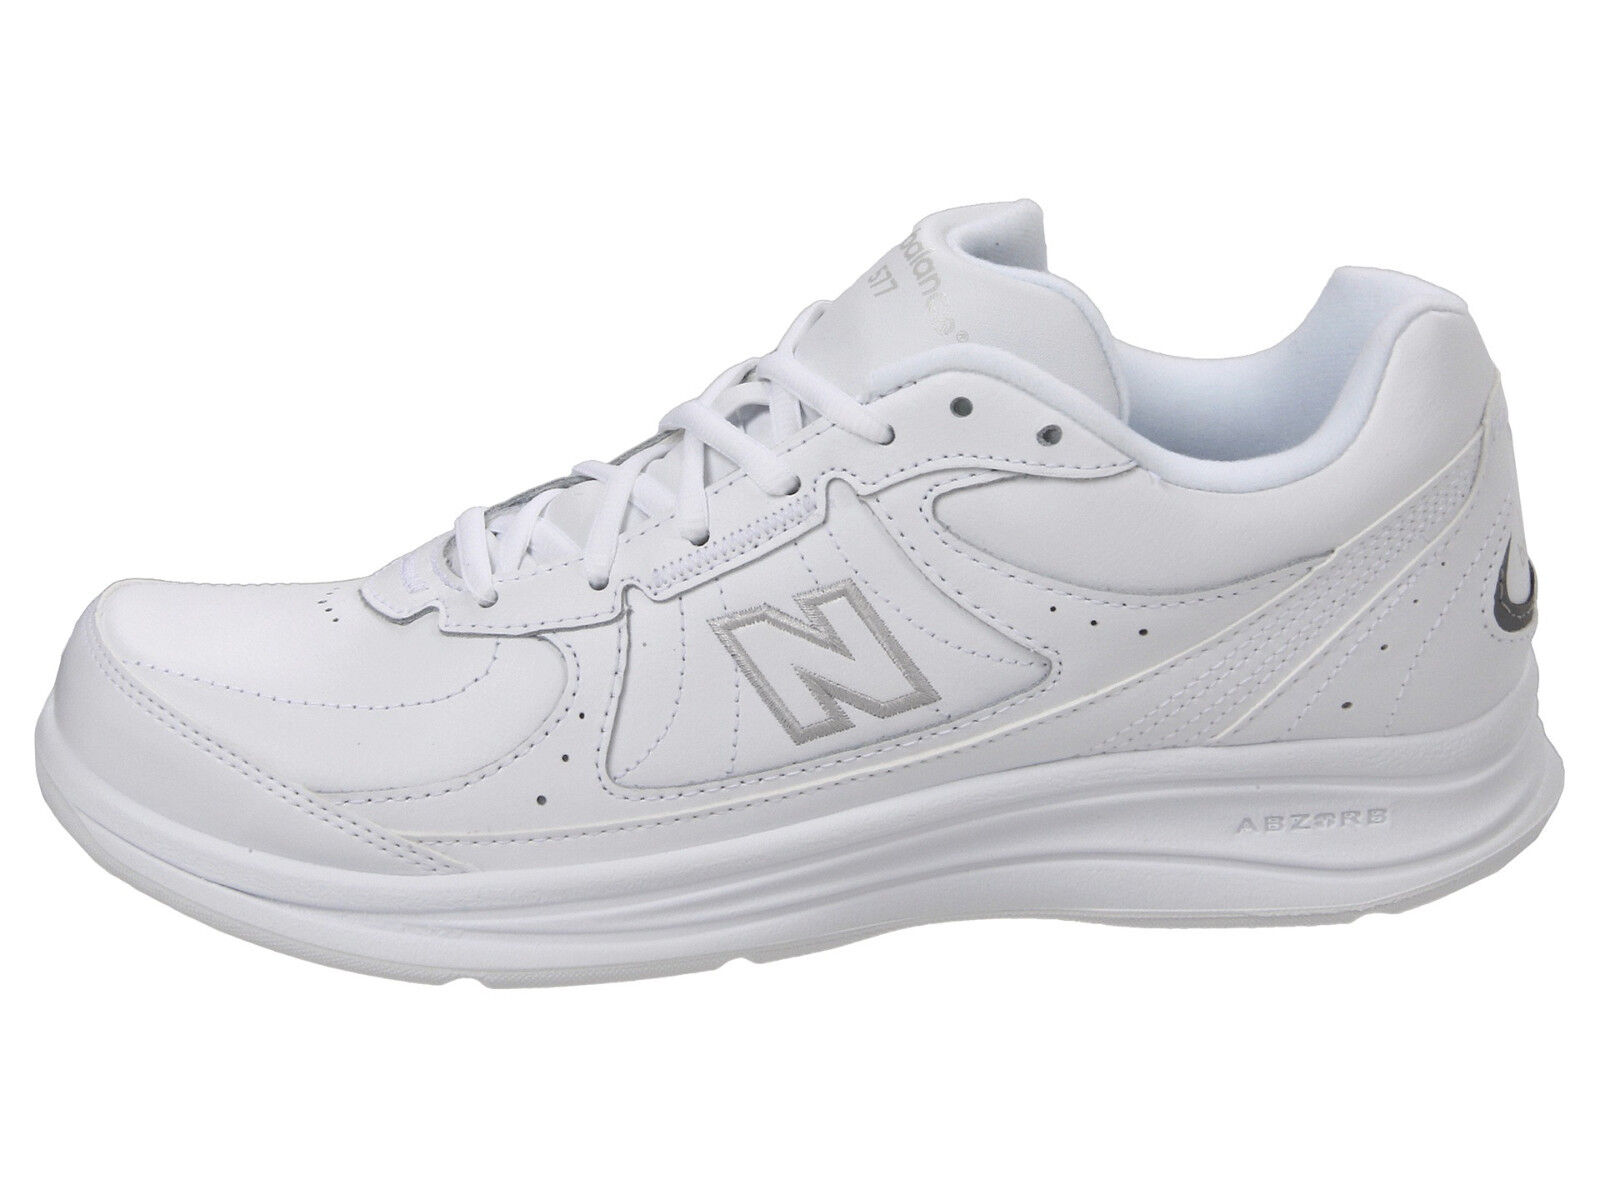 Men New Balance MW577WT MW577WT MW577WT Walking (Medium D) bianca 100% Authentic Brand New 15e4d1